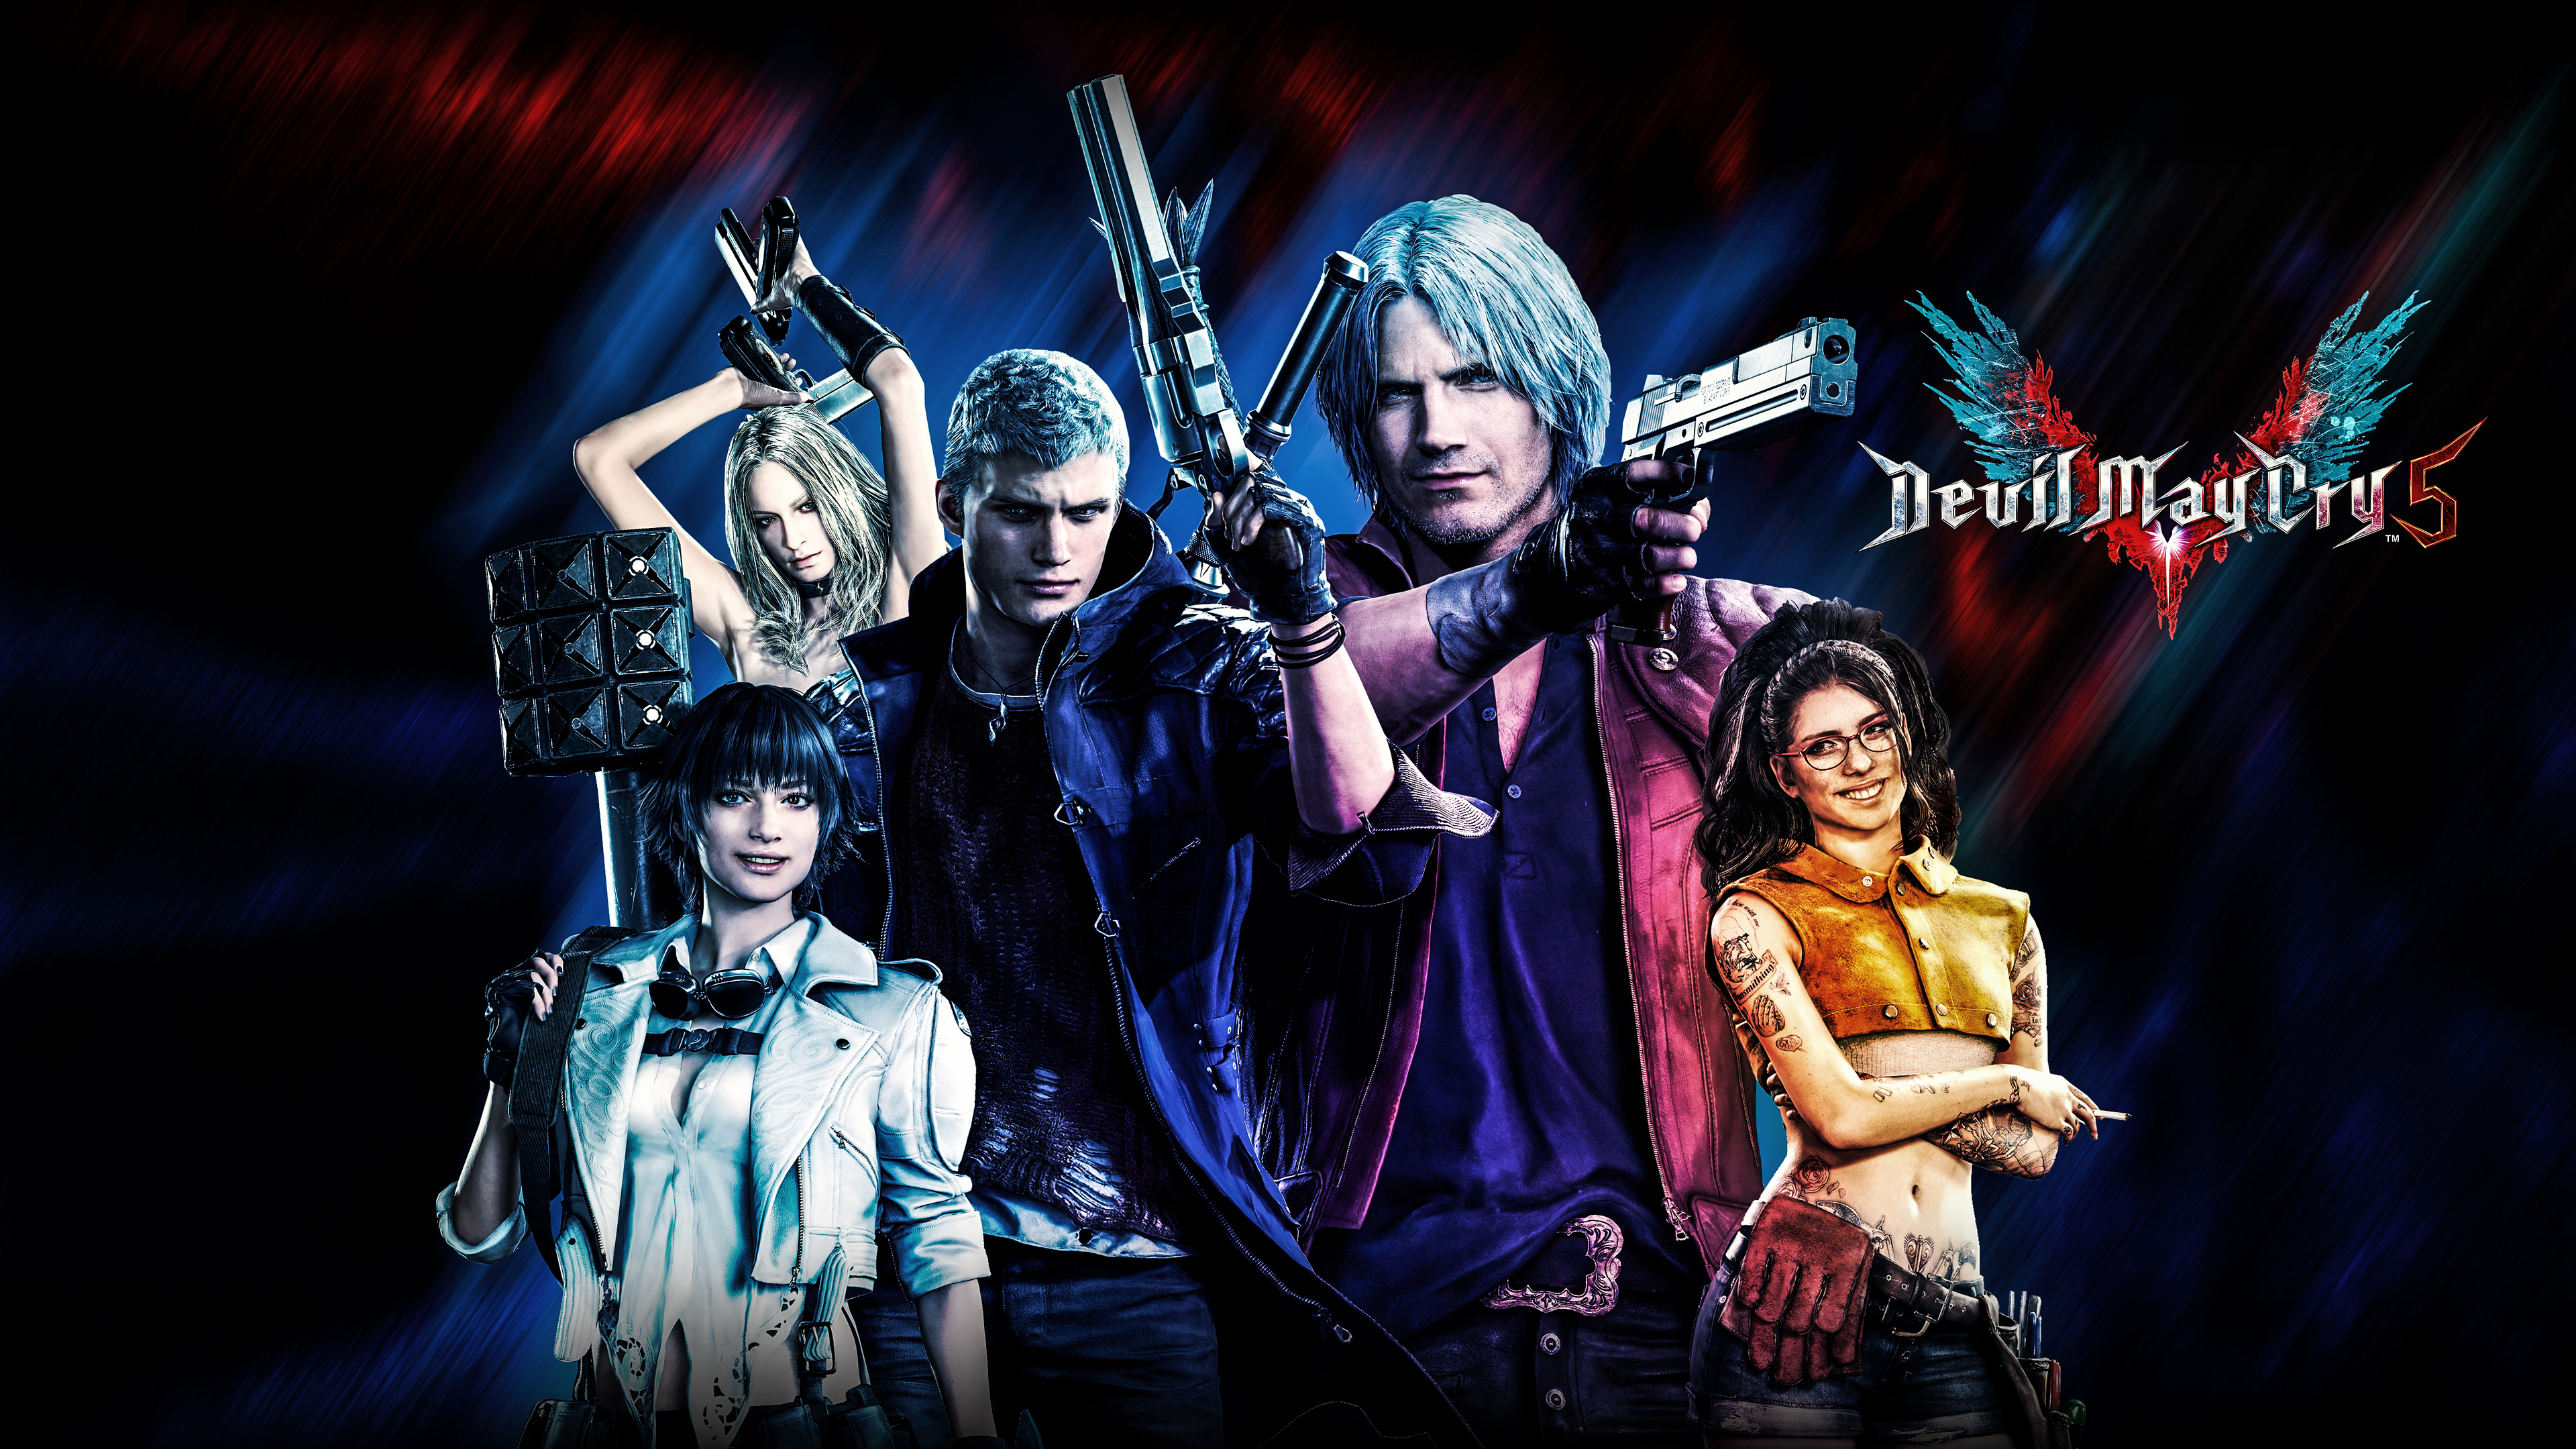 Wallpaper 4k Devil May Cry 2019 4k 2019 Games Wallpapers 4k